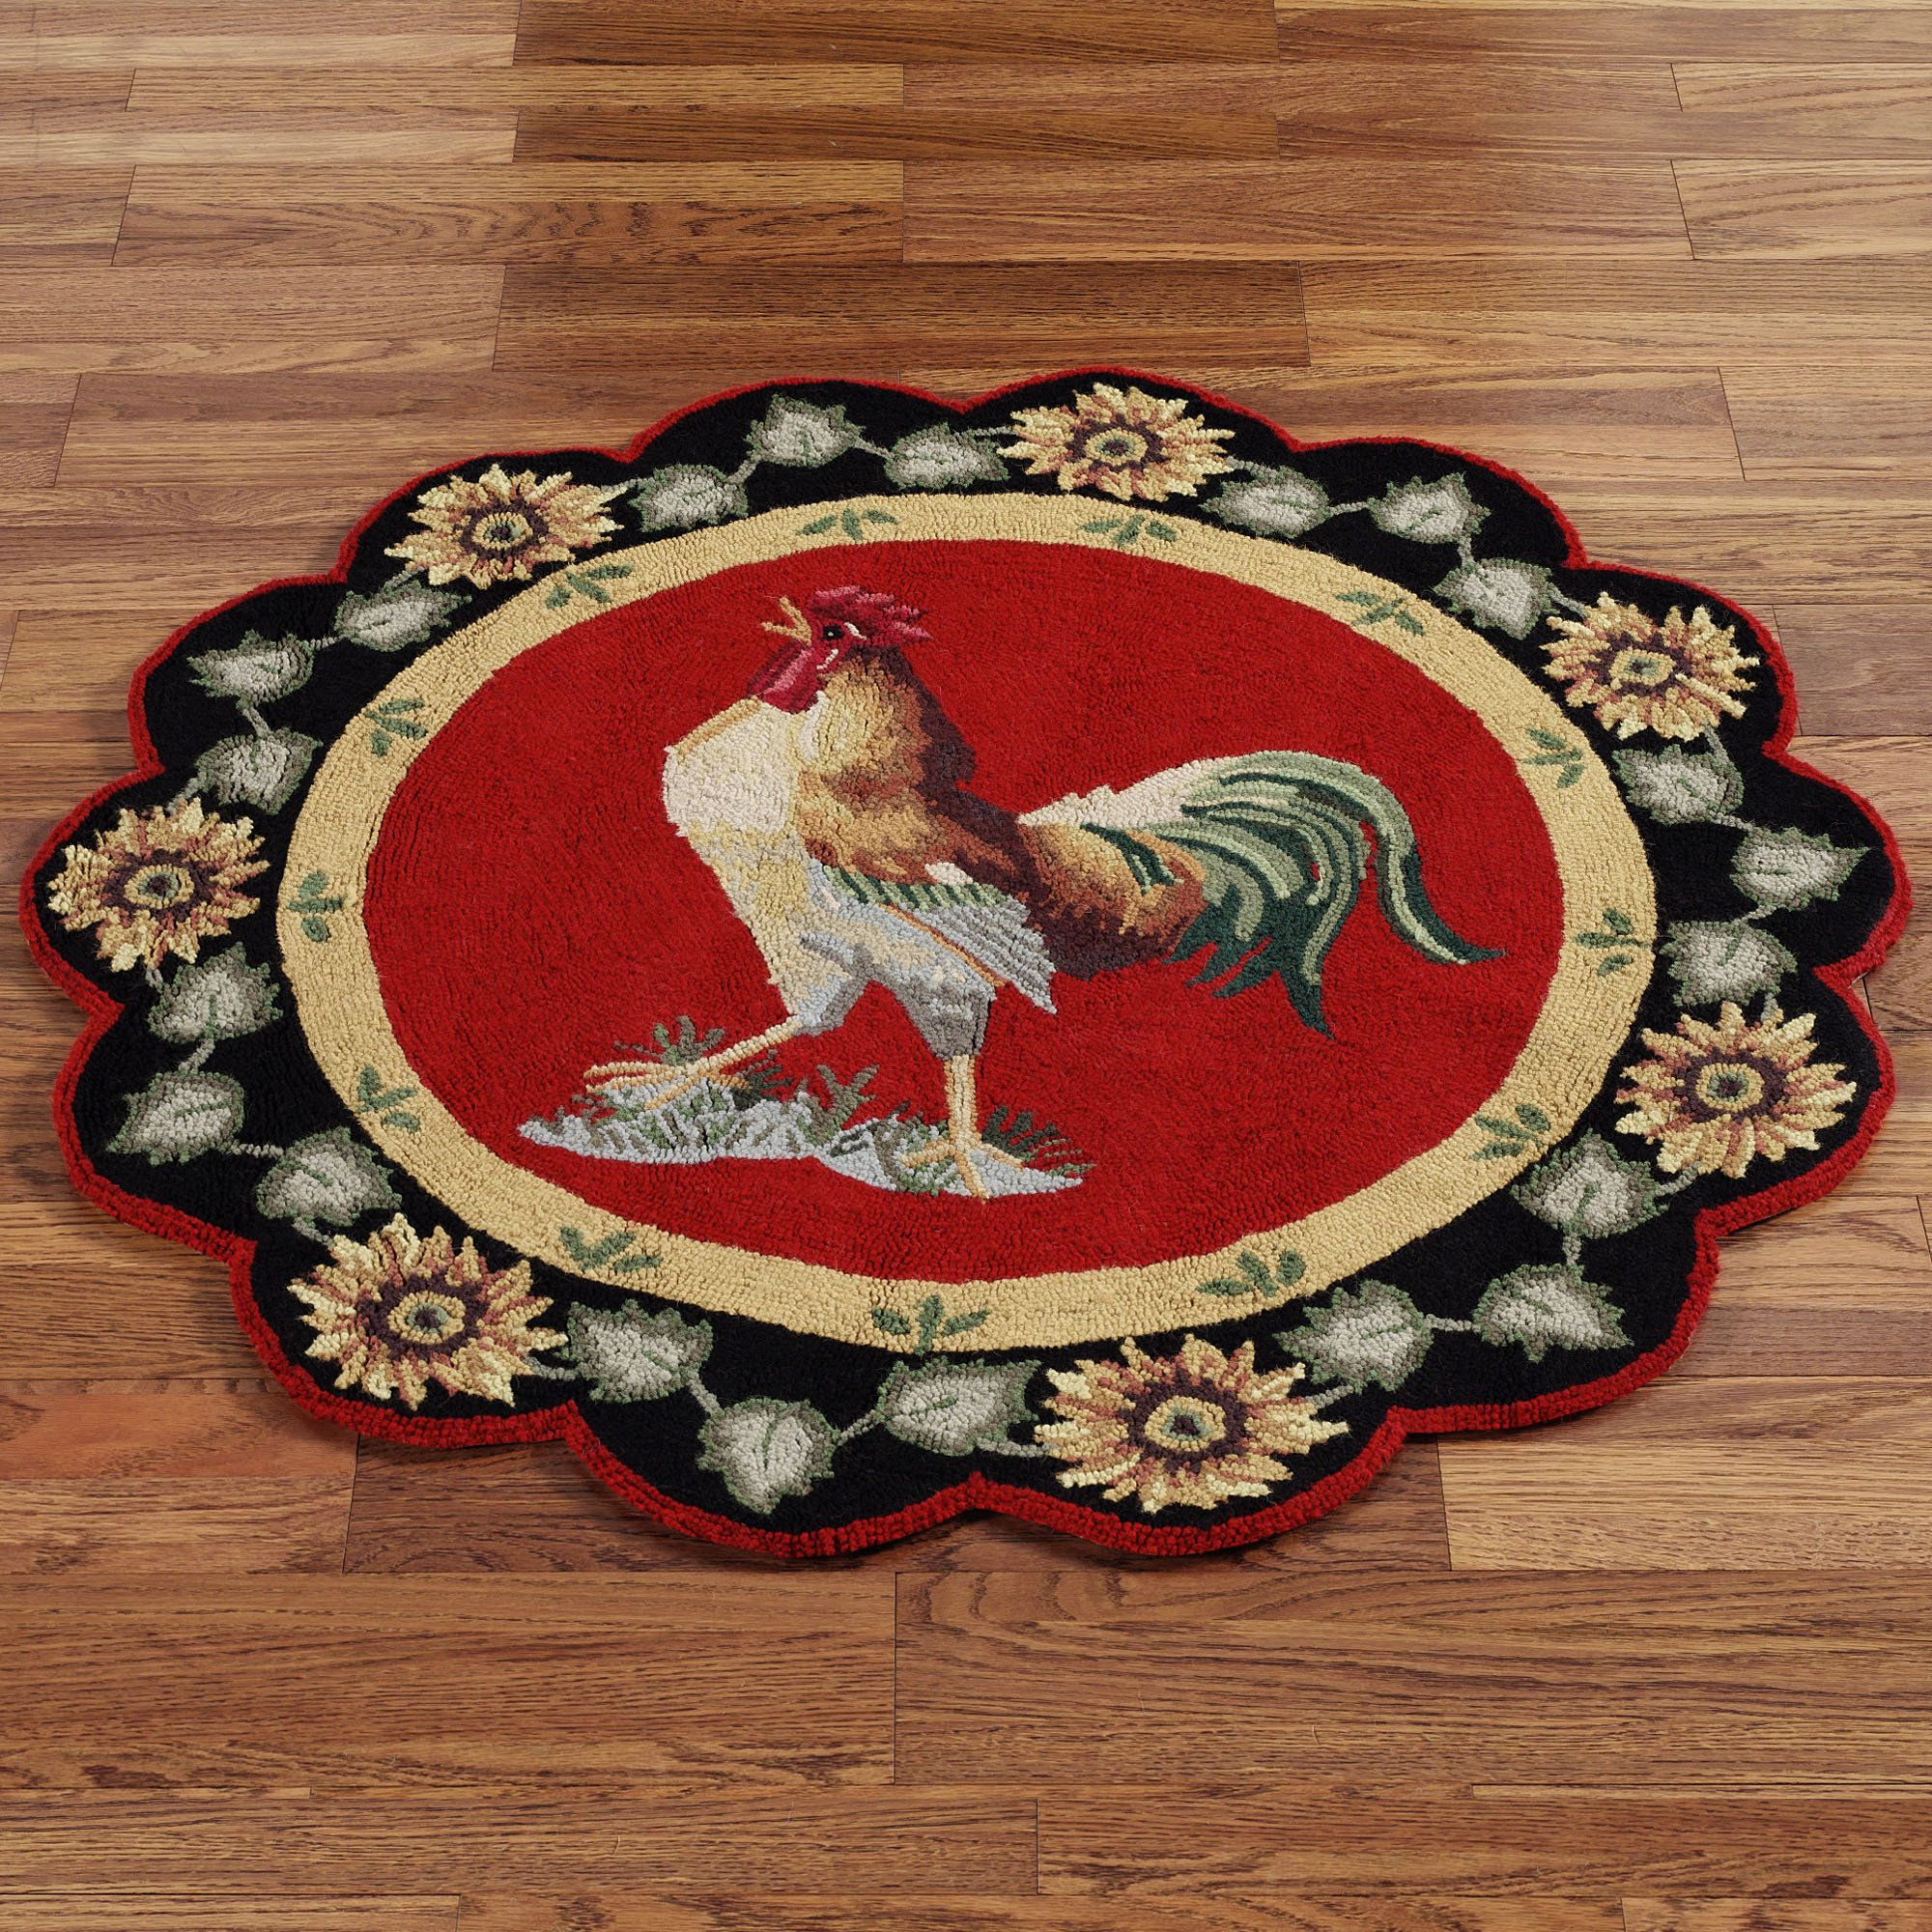 Awesome Round Rooster Rugs For Kitchen | Home Barnyard Rooster Round Rug 3u0027 Round